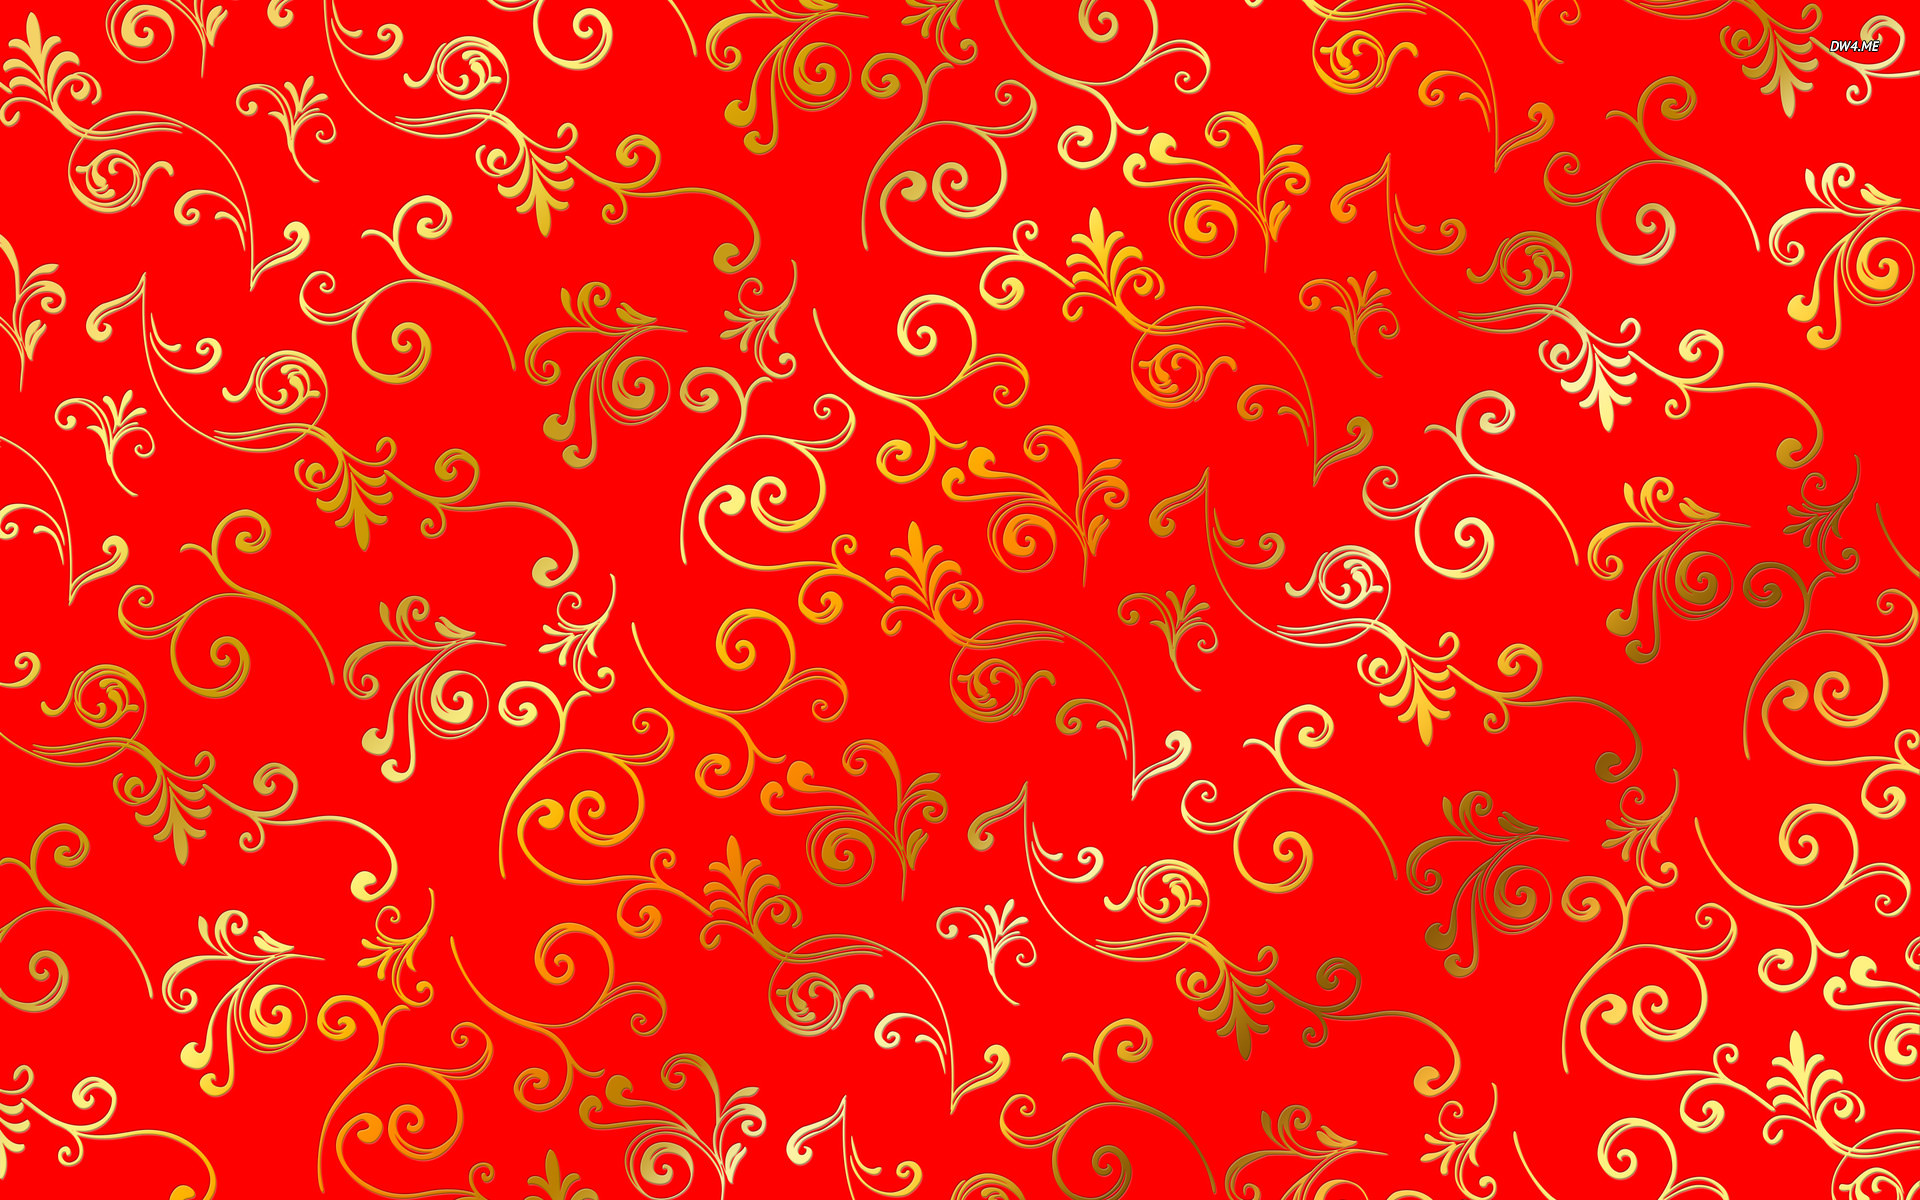 Golden Swrils Pattern Background